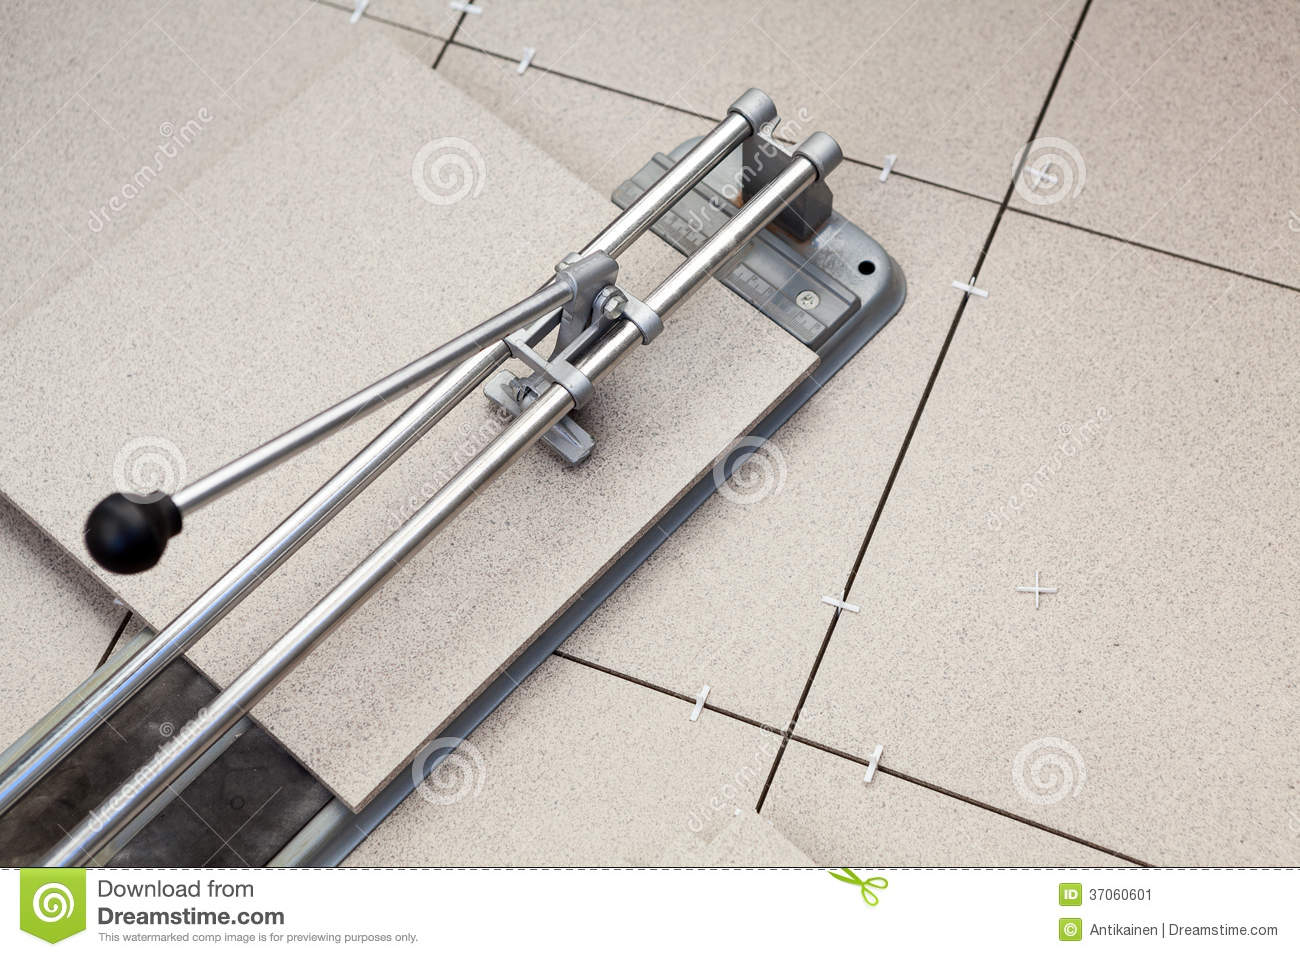 Tool for cutting porcelain tile stock image image of install tool for cutting porcelain tile dailygadgetfo Image collections